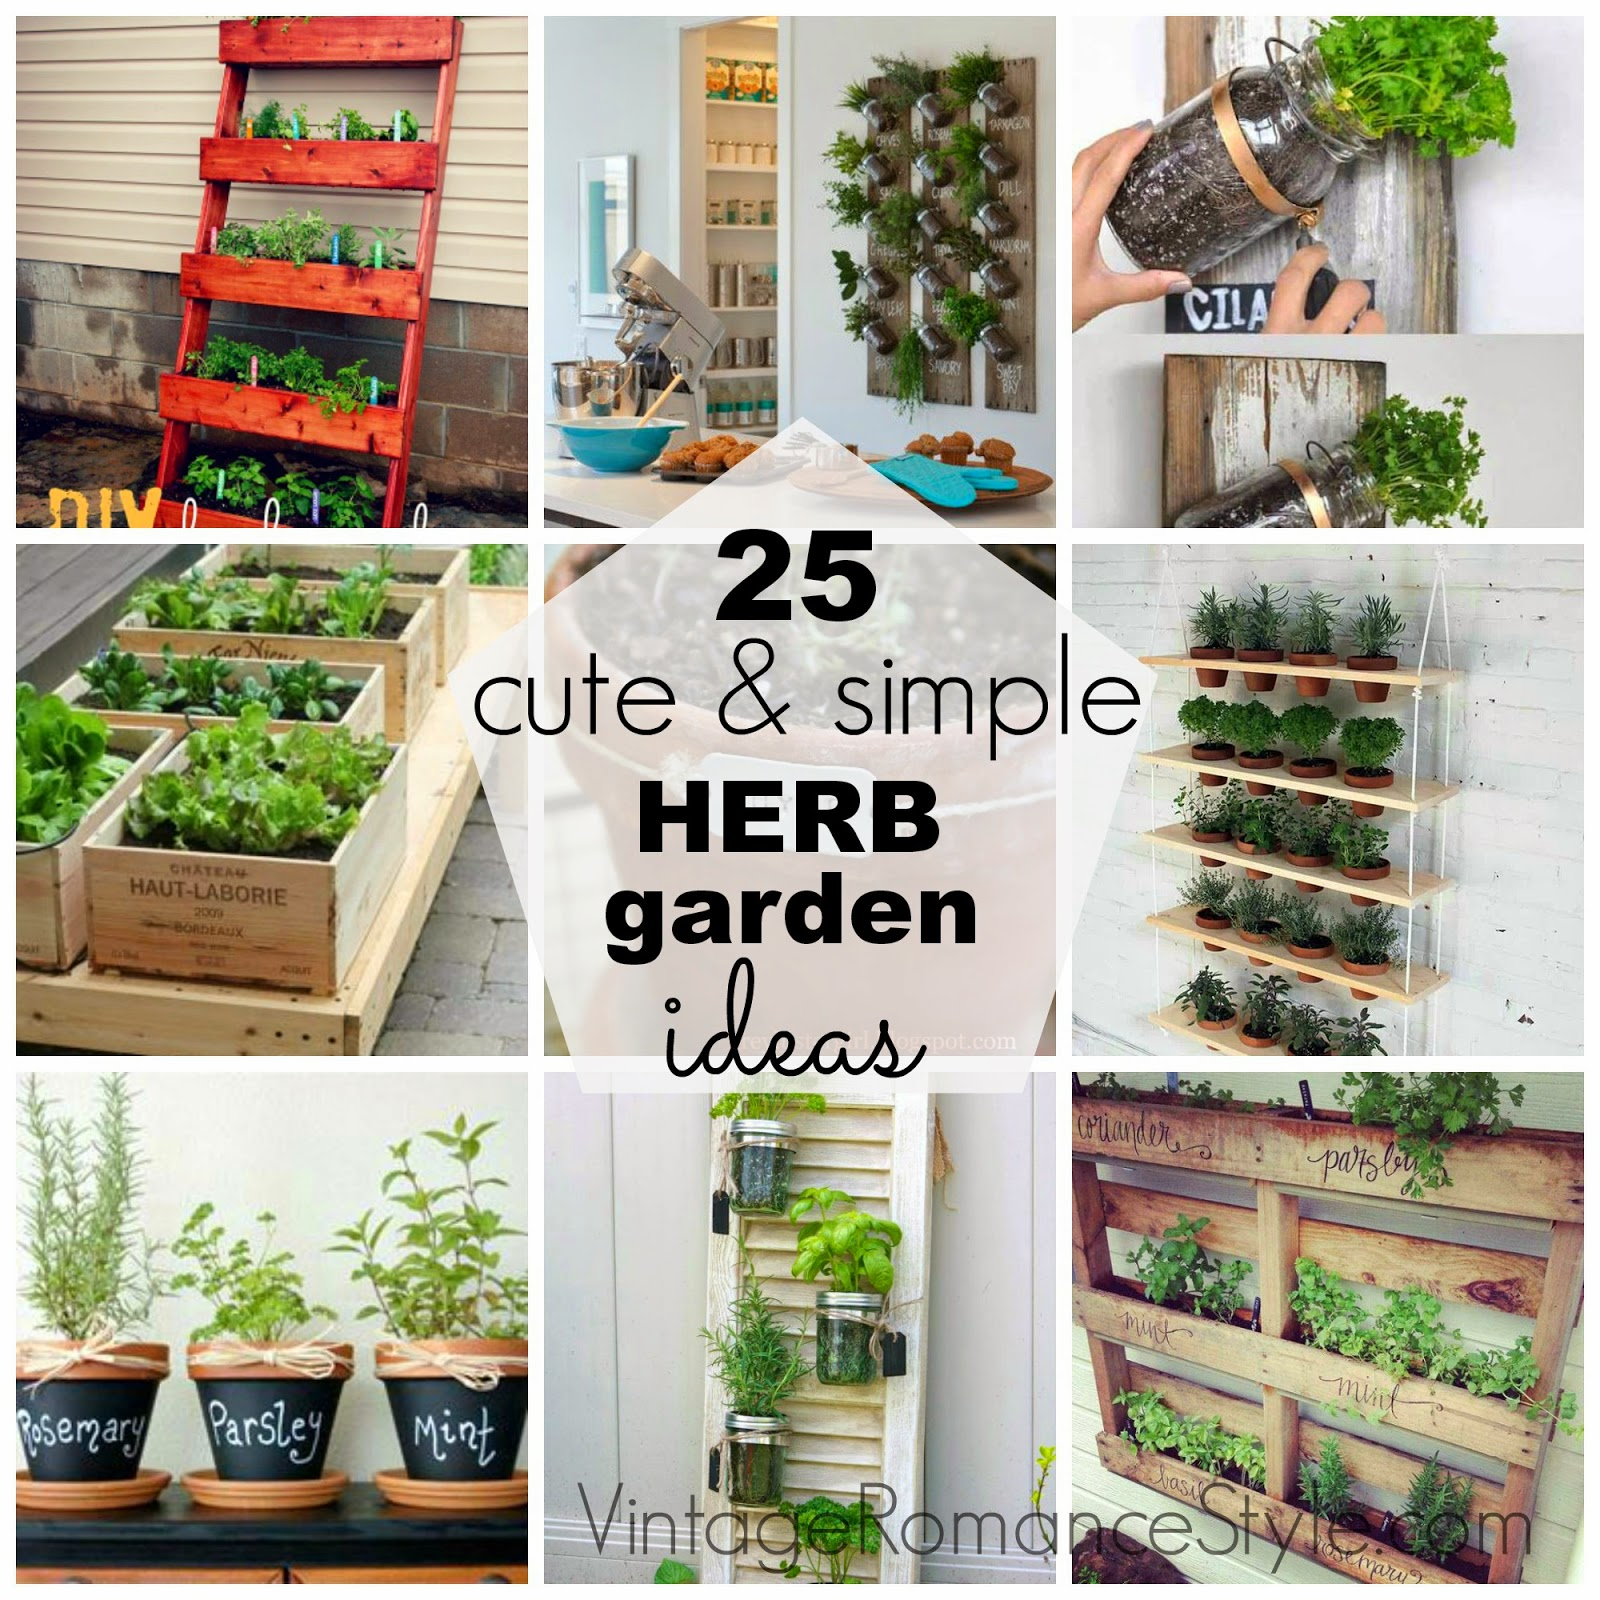 25 Cute Simple Herb Garden Ideas Vintage Romance Style